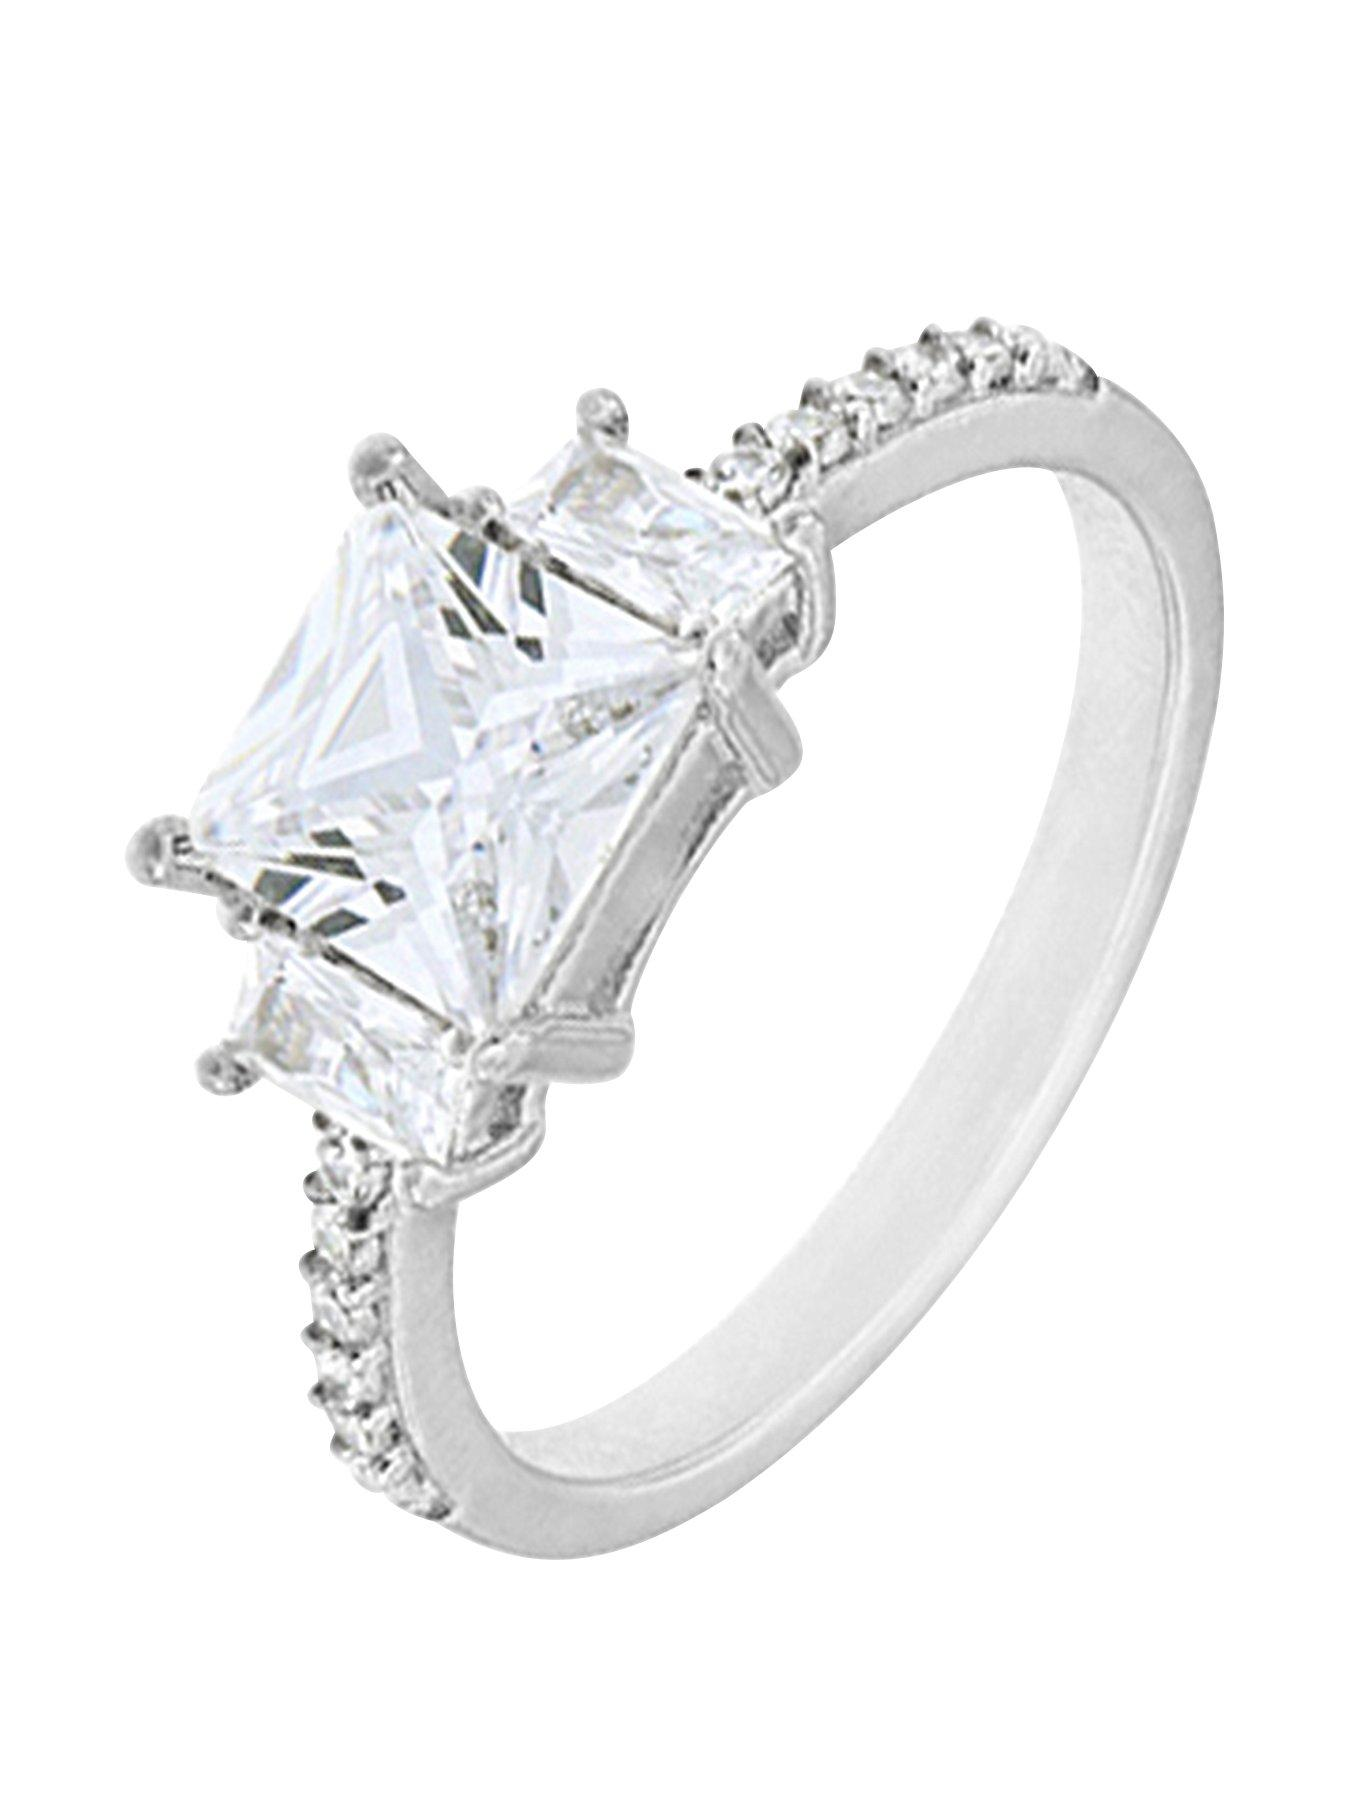 Pink Princess Cut Cubic Zirconia Designer Ring Rhodium Plated Sterling Silver